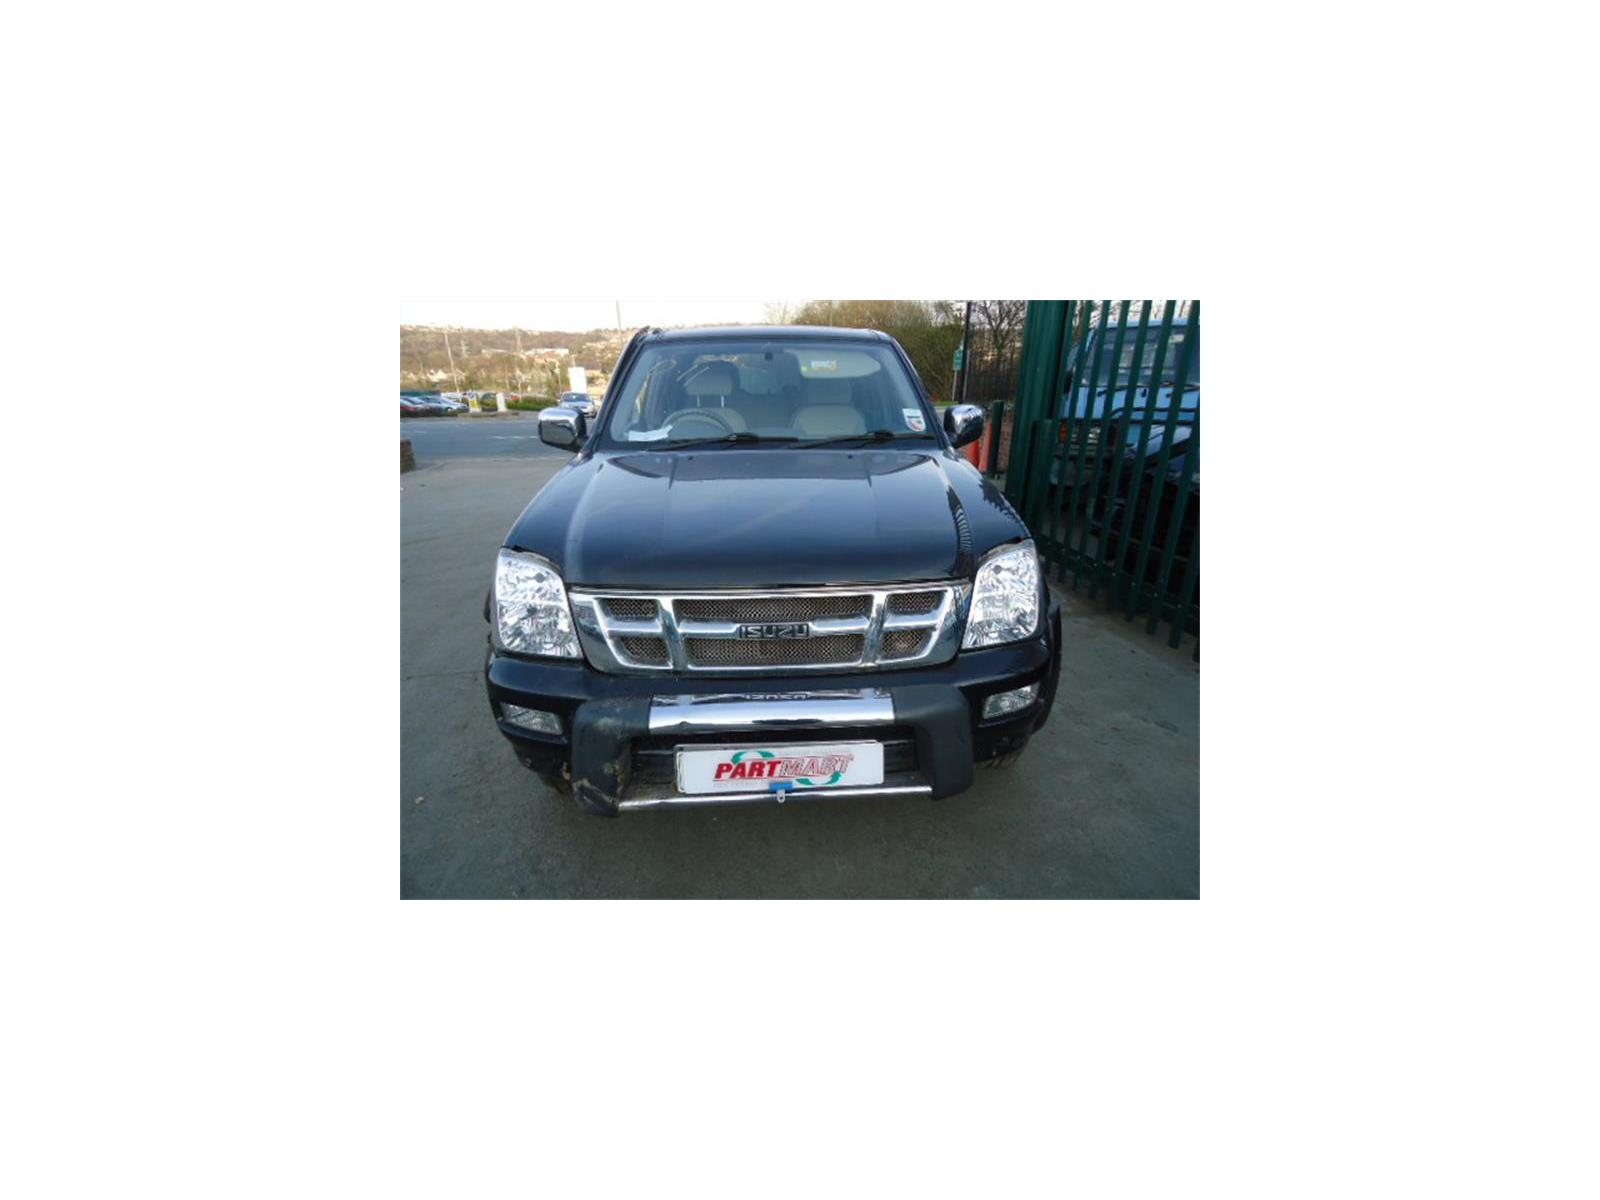 2005 Isuzu Rodeo 2003 To 2008 D/Cab Pick-Up (Diesel / Not Applicable